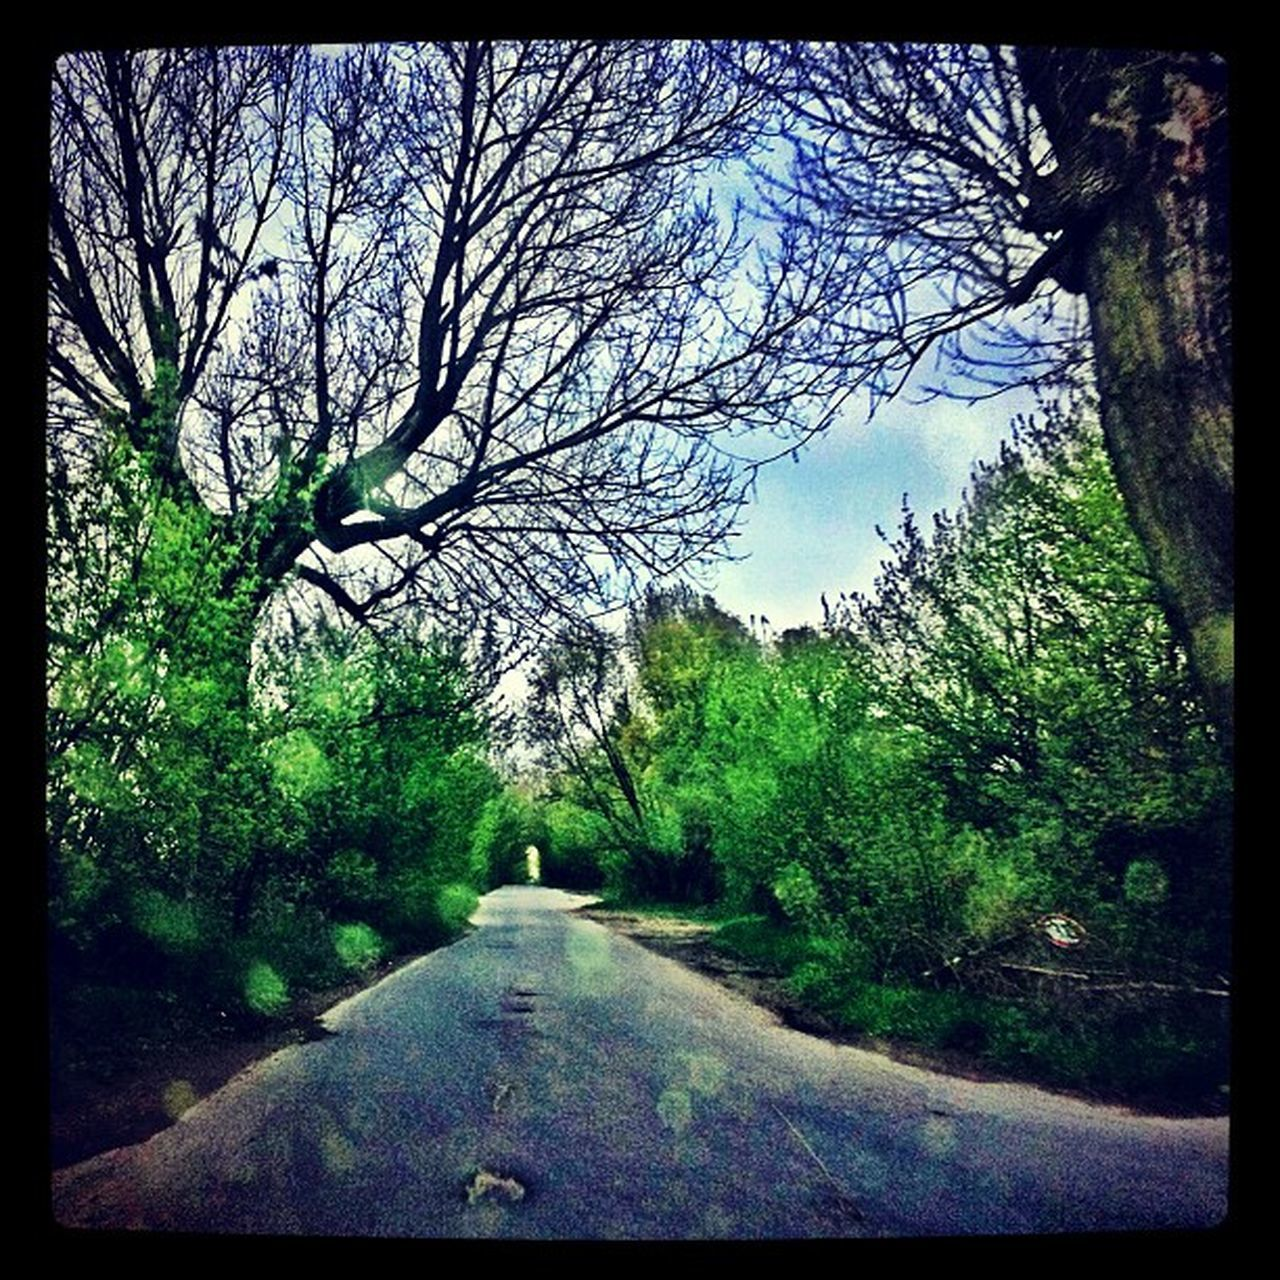 tree, branch, day, nature, tranquility, forest, outdoors, no people, bare tree, road, landscape, growth, scenics, sky, beauty in nature